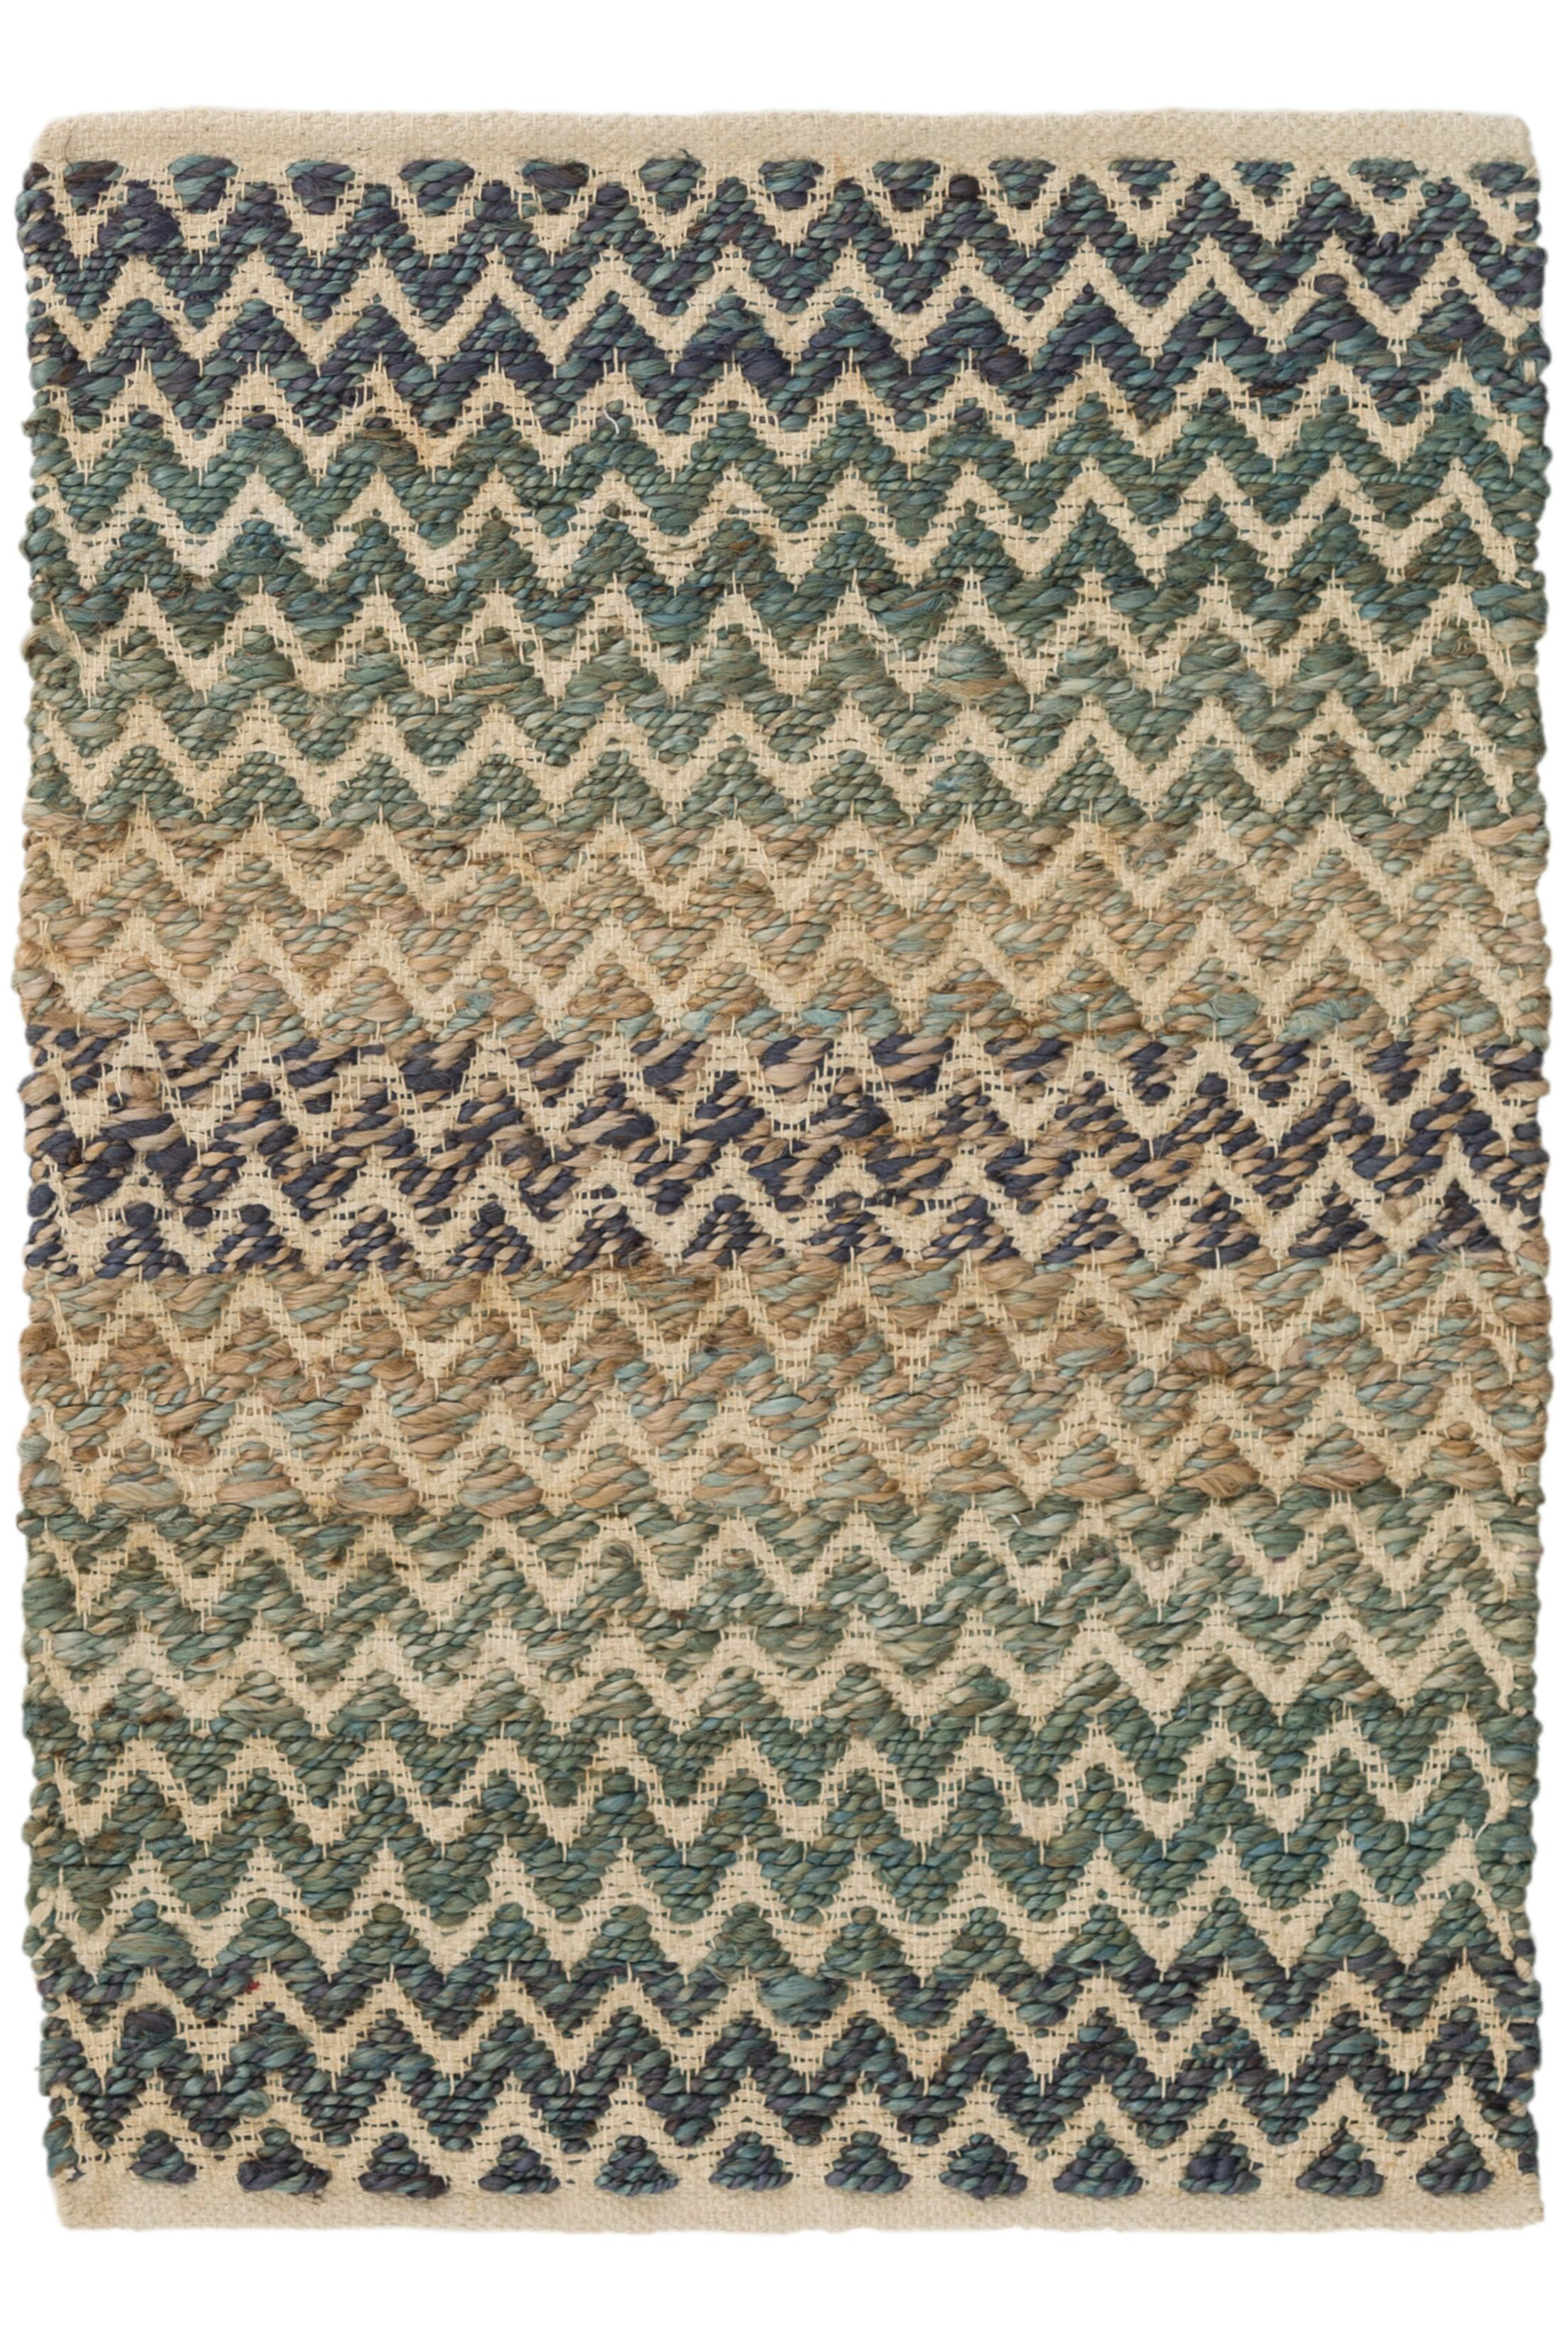 Green/Blue Area Rug Rug Size: 3' x 5'